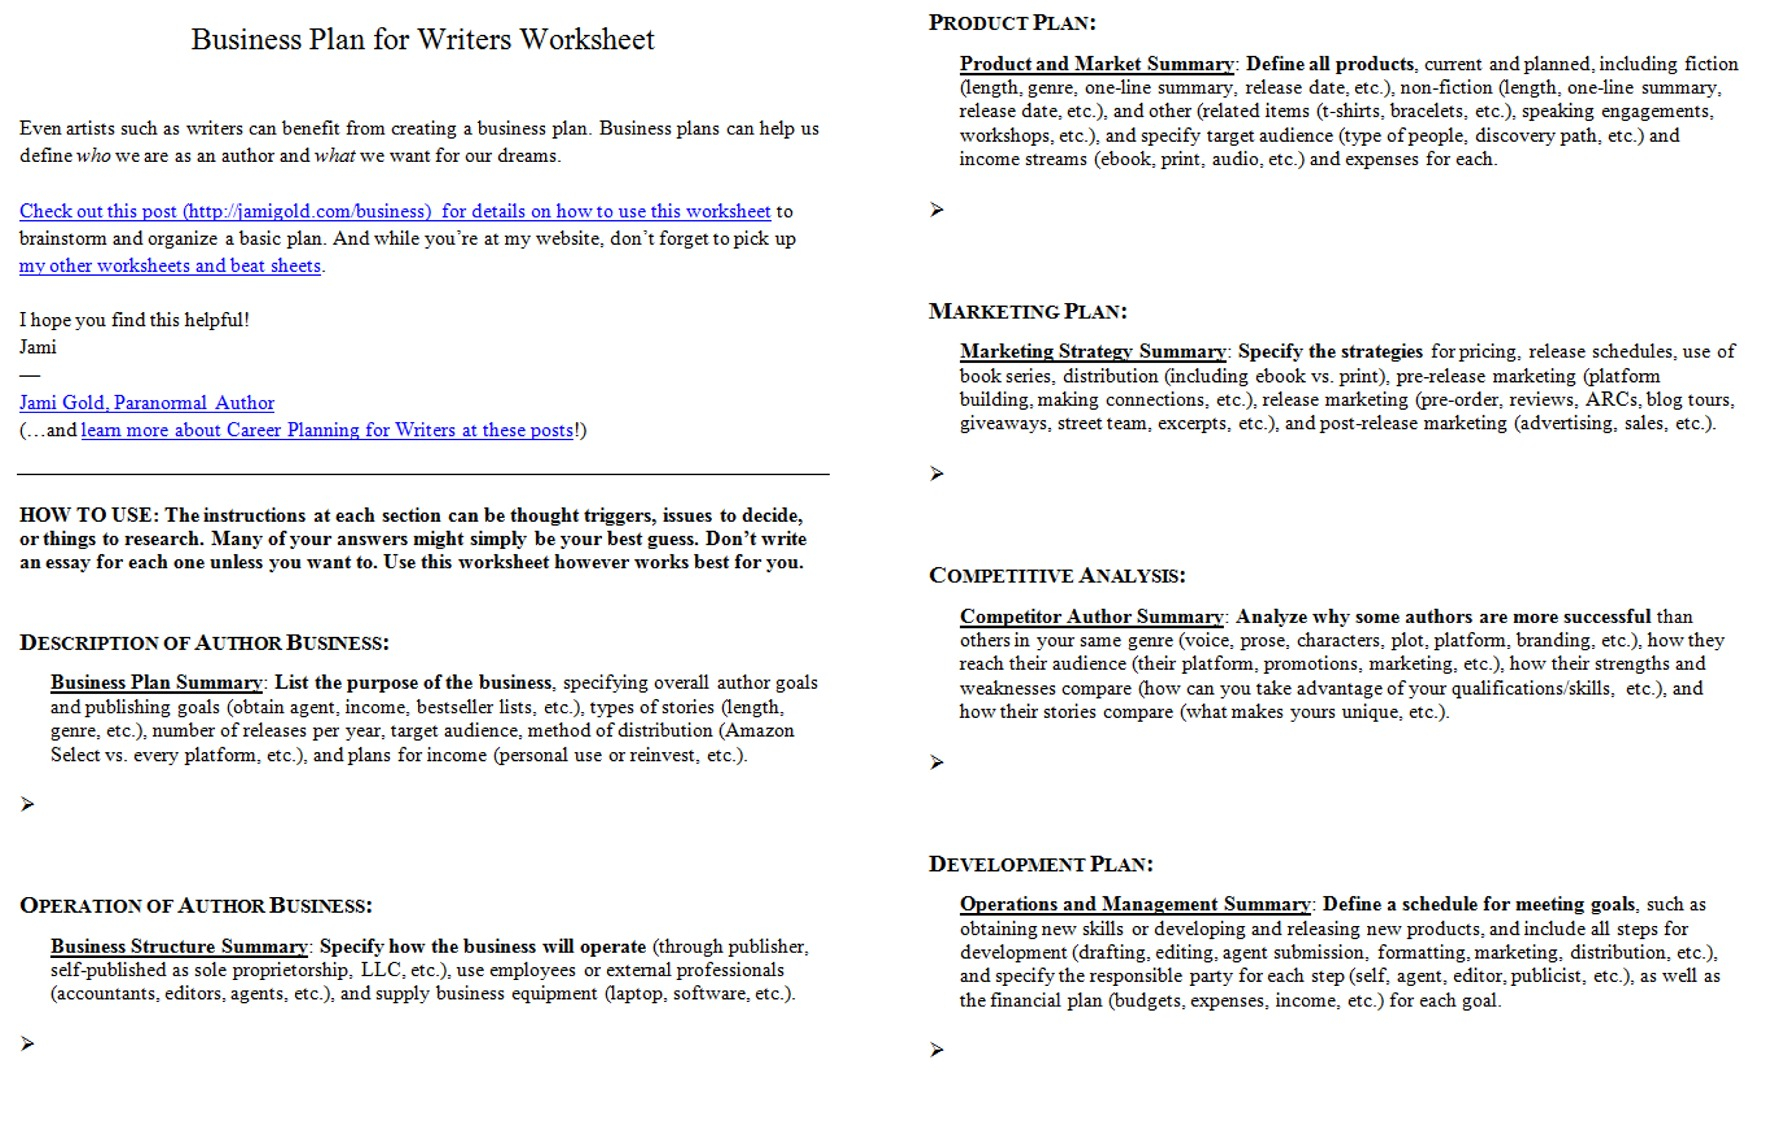 Proatmealus  Marvellous Worksheets For Writers  Jami Gold Paranormal Author With Lovable Screen Shot Of Both Pages Of The Business Plan For Writers Worksheet With Appealing Transposition Worksheet Also Easy Volume Worksheets In Addition Free Money Printable Worksheets And Worksheets On Past Present And Future Tenses As Well As Teaching Vocabulary Worksheets Additionally Multiplication Worksheets With Decimals From Jamigoldcom With Proatmealus  Lovable Worksheets For Writers  Jami Gold Paranormal Author With Appealing Screen Shot Of Both Pages Of The Business Plan For Writers Worksheet And Marvellous Transposition Worksheet Also Easy Volume Worksheets In Addition Free Money Printable Worksheets From Jamigoldcom